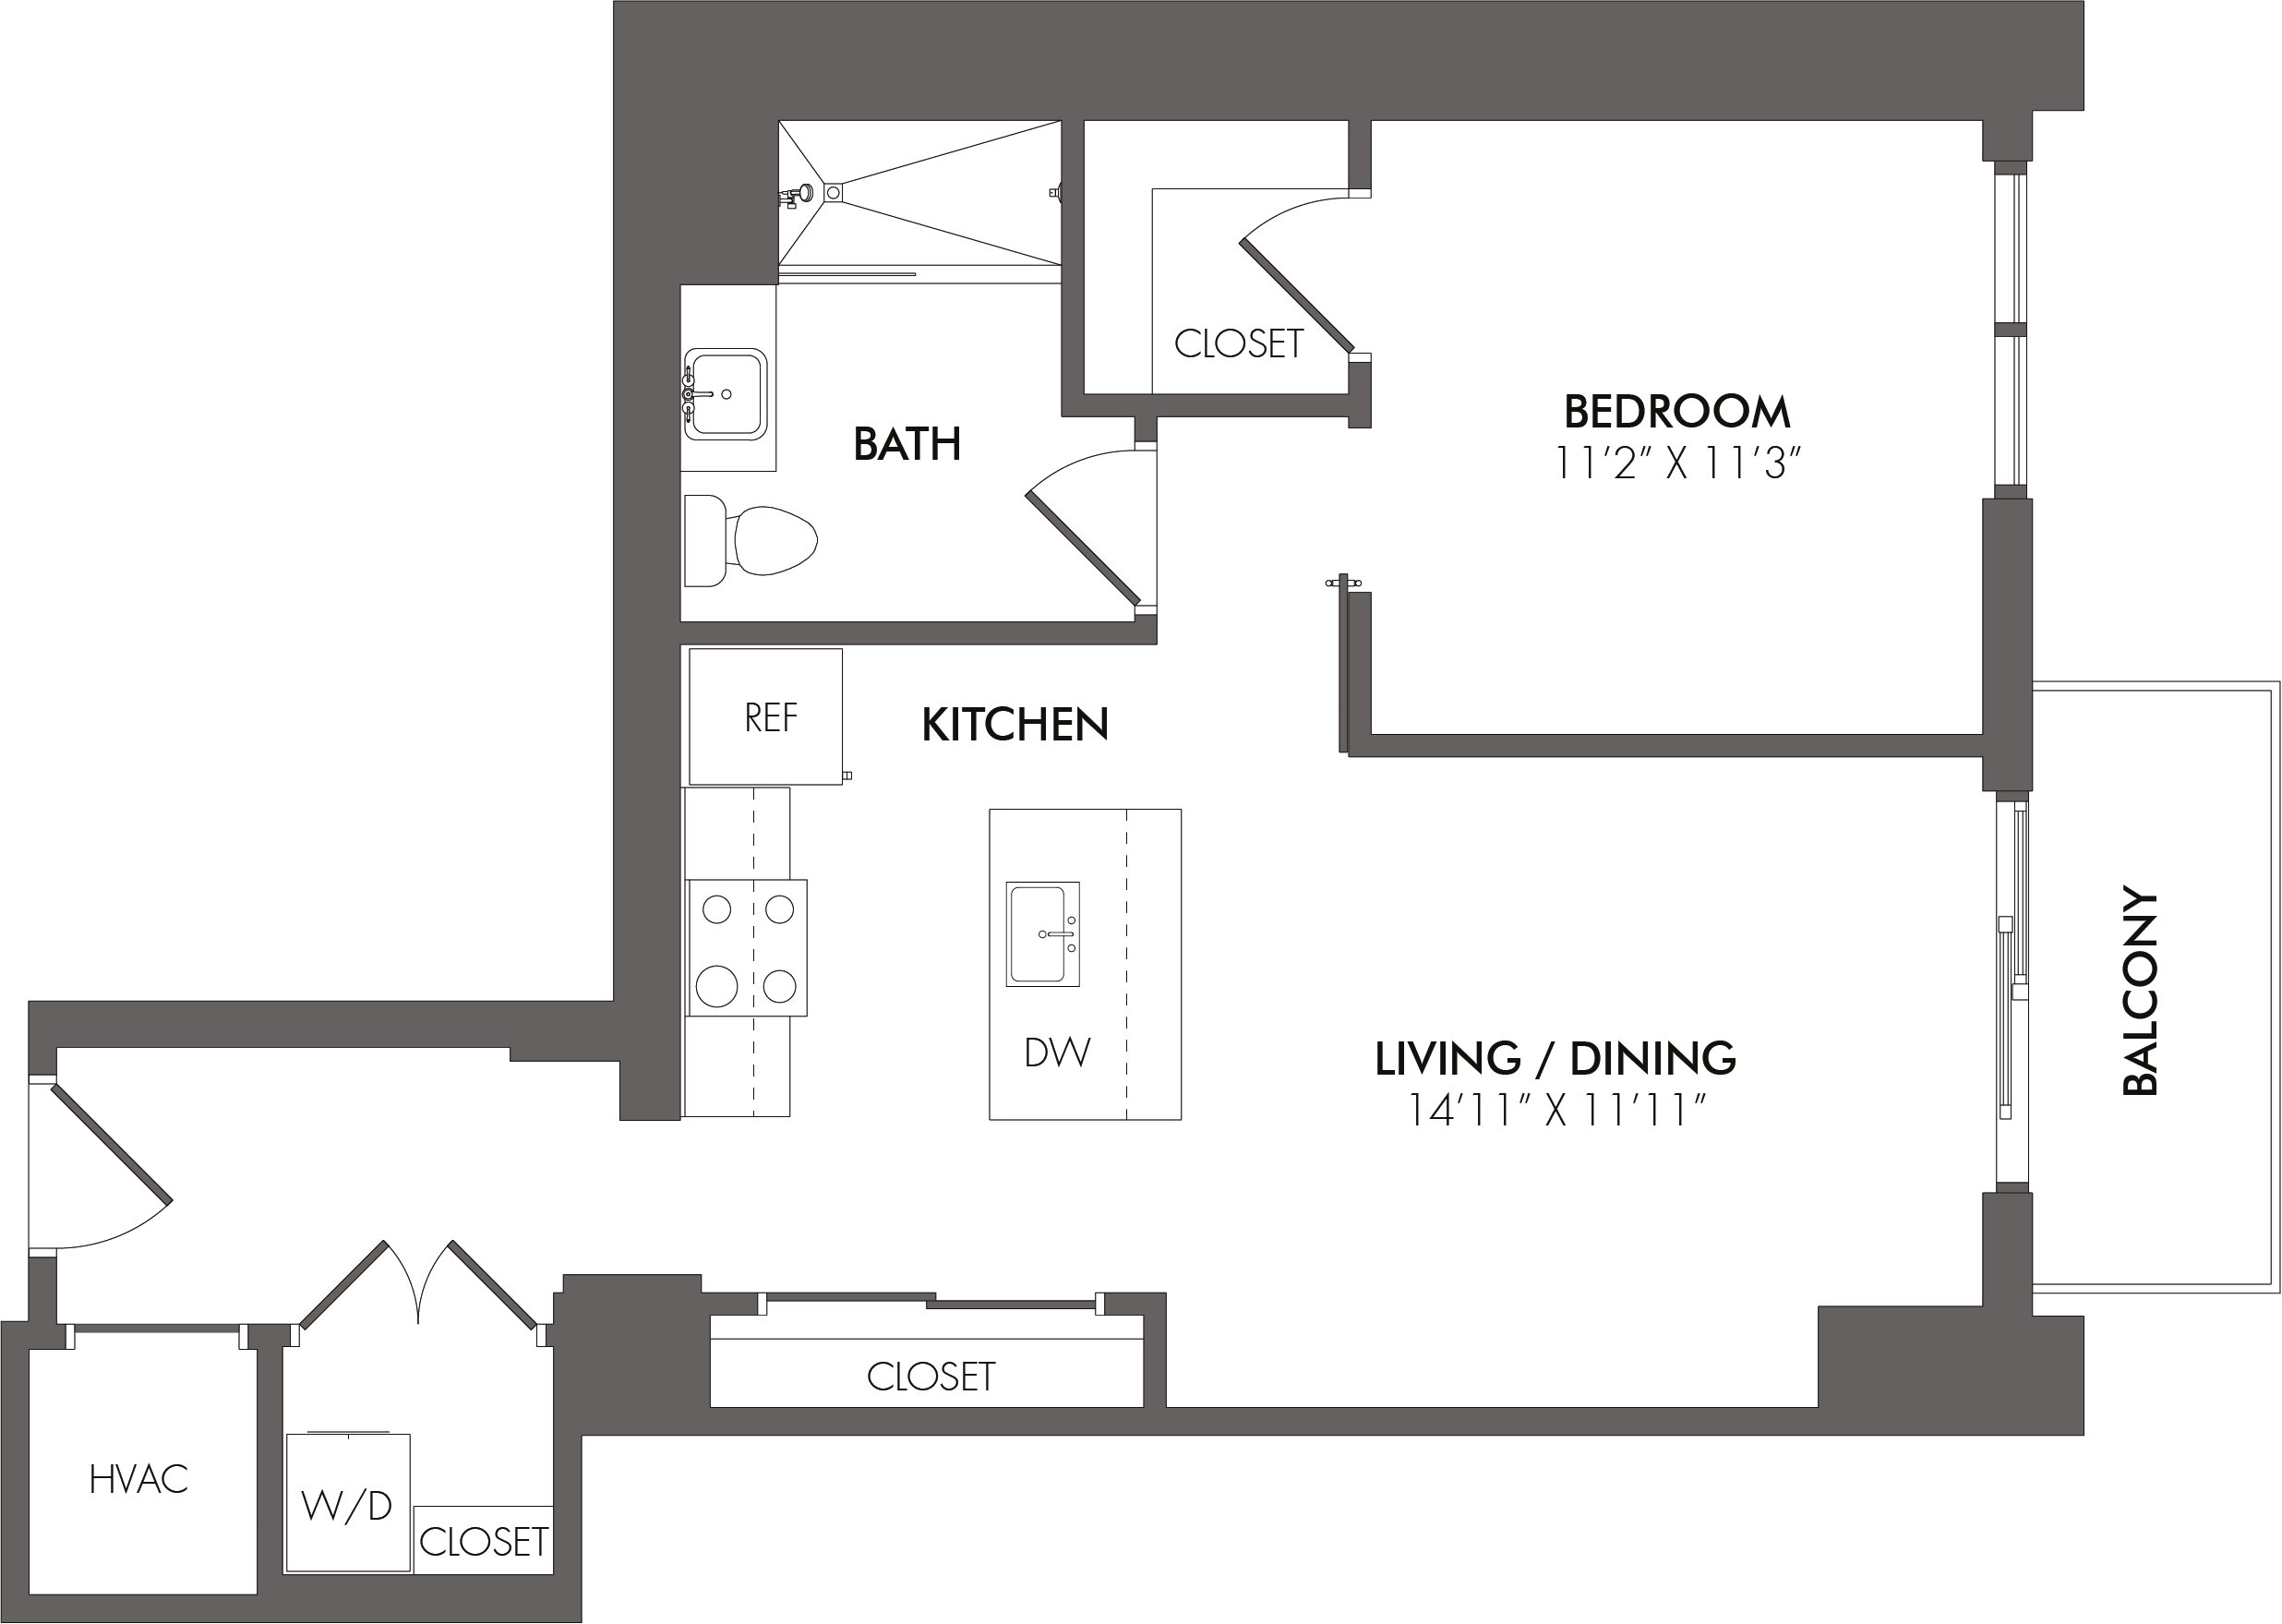 Apartment 3407 floorplan